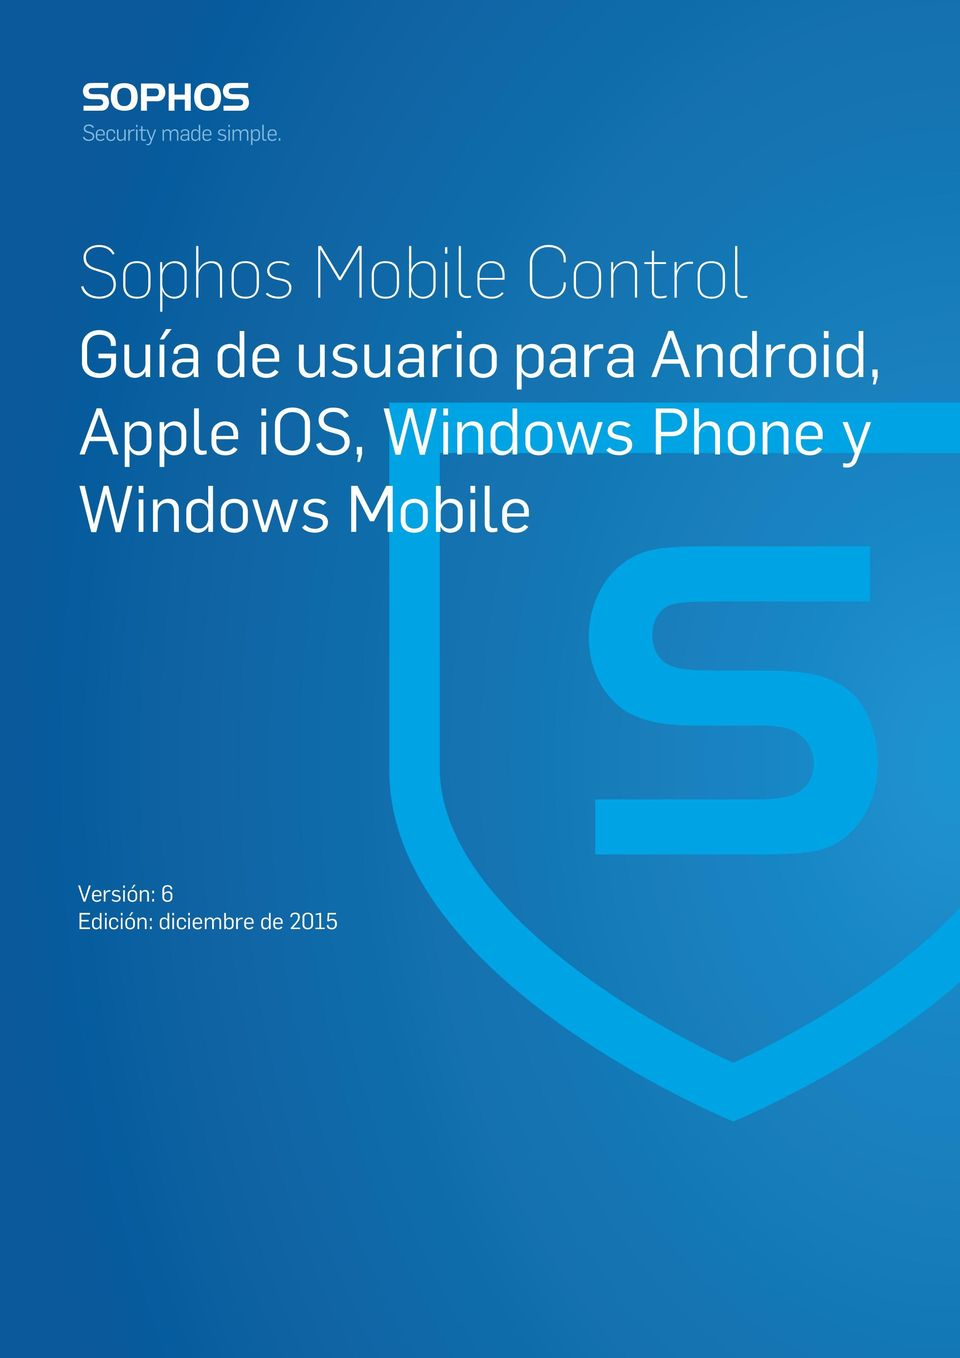 Windows Phone y Windows Mobile